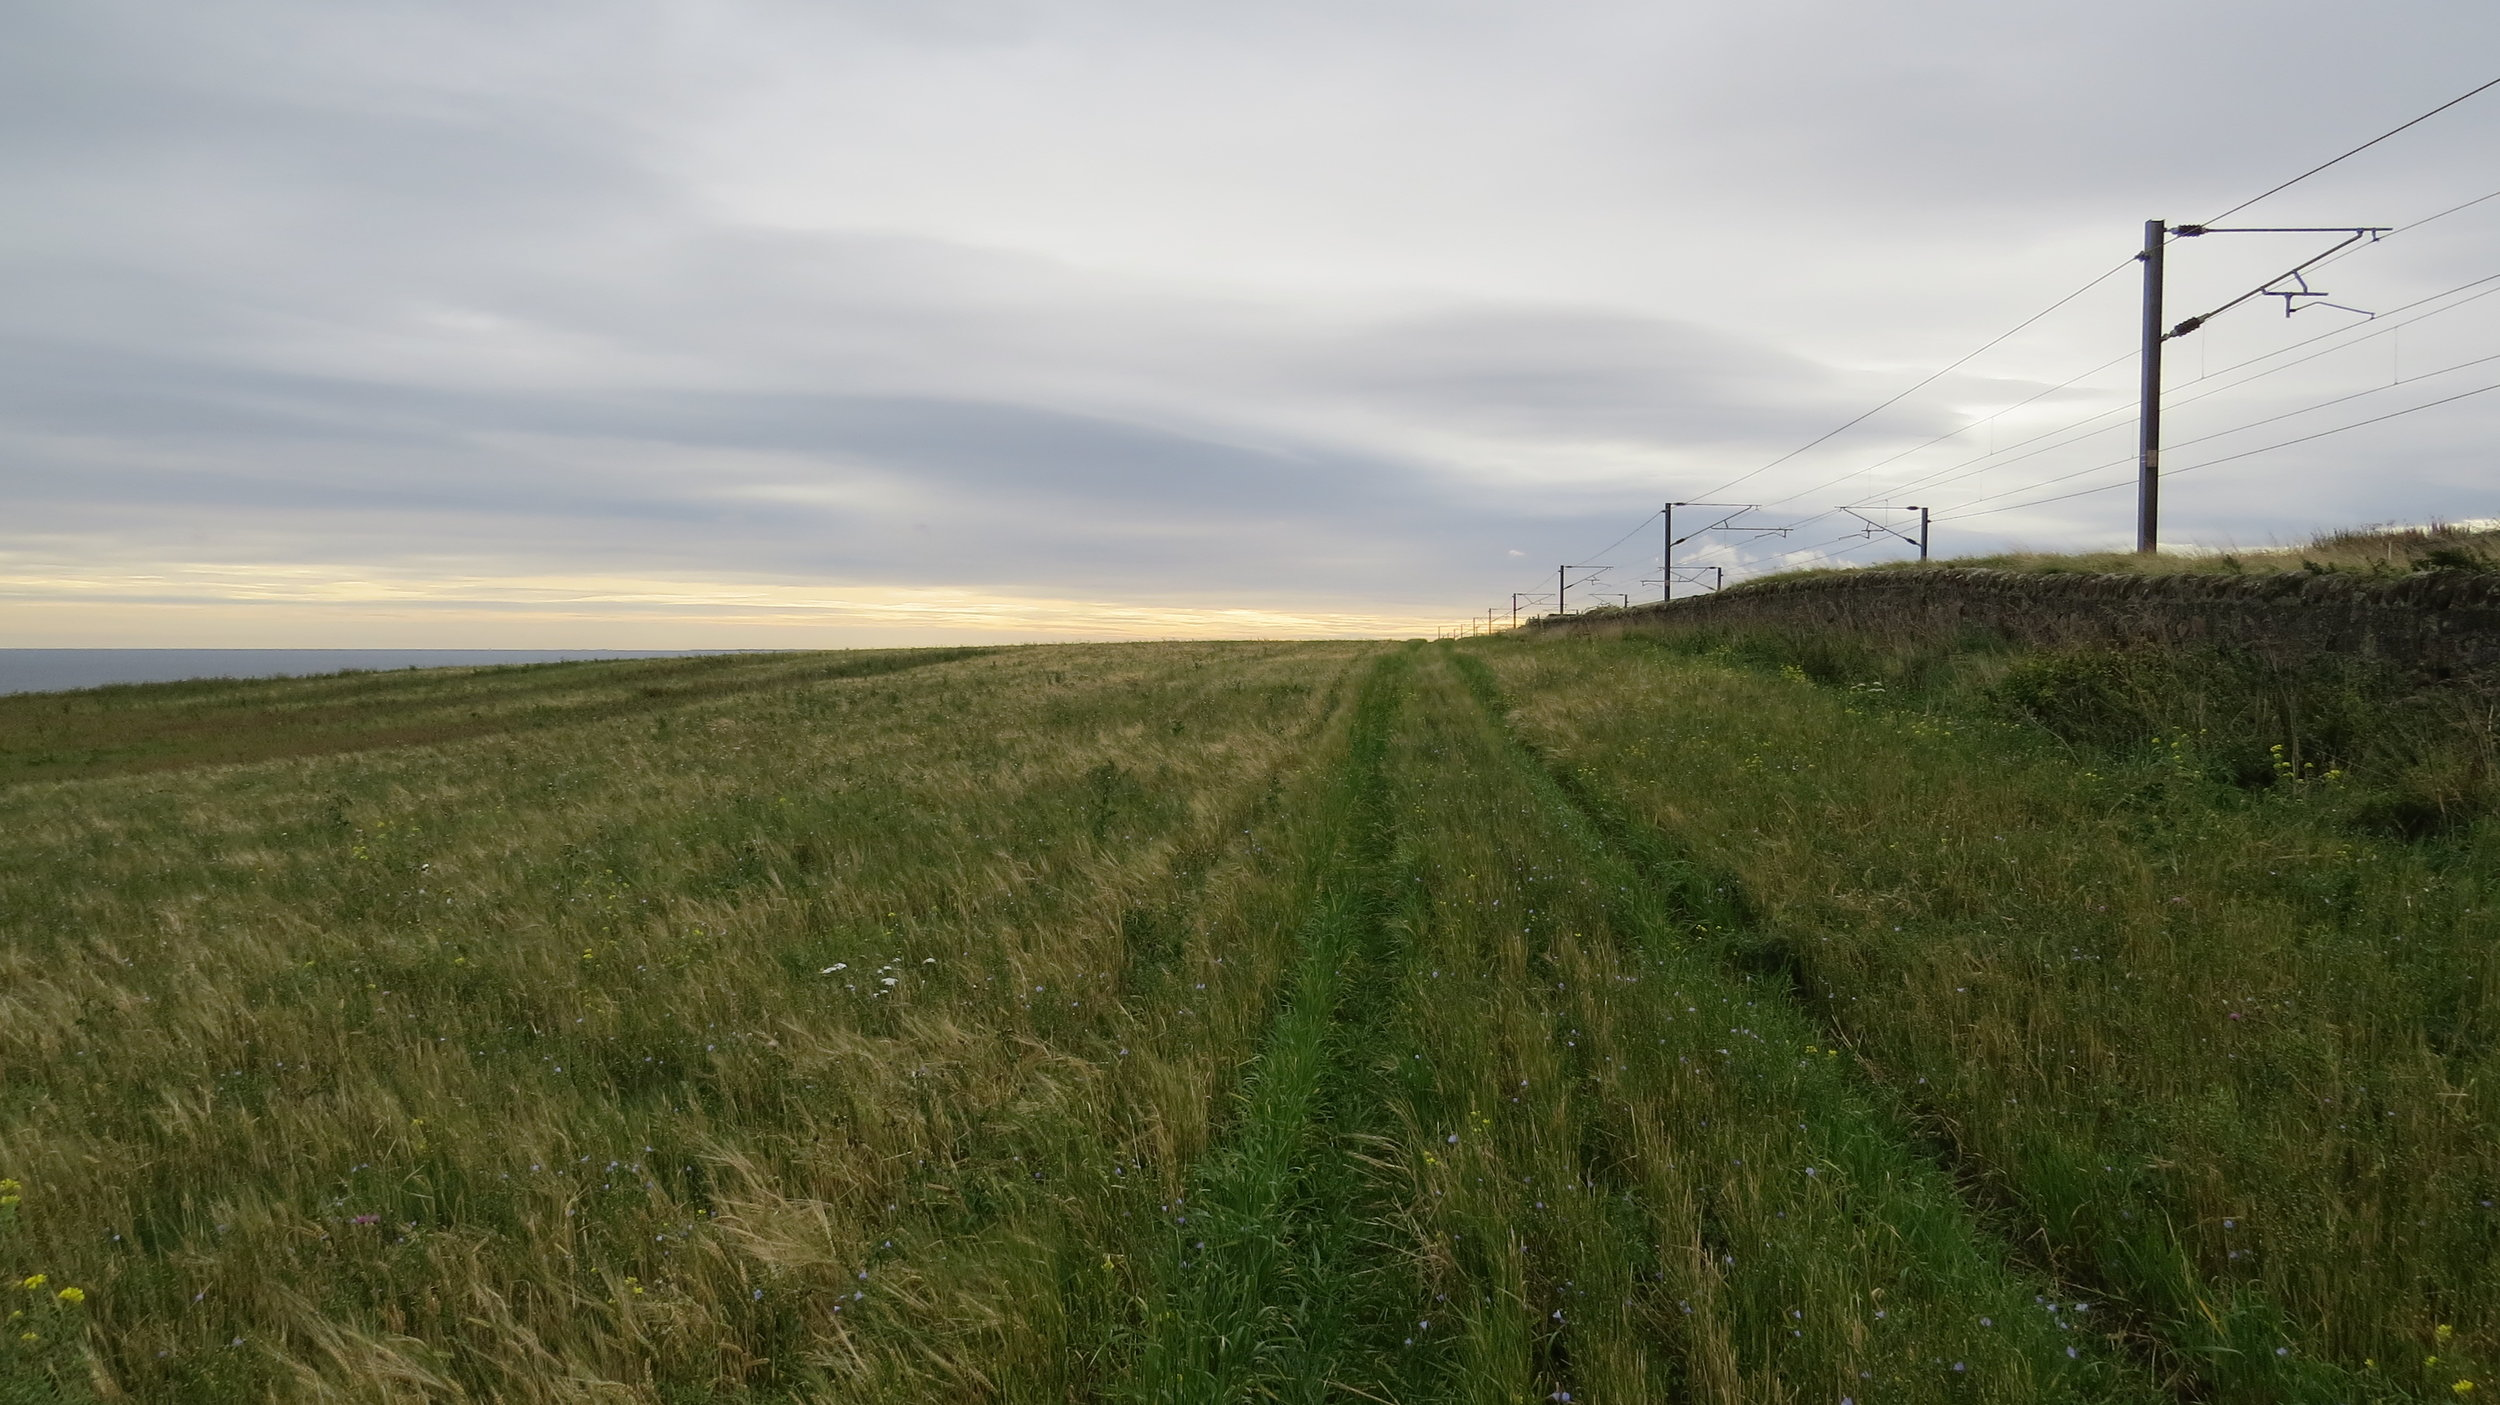 Track by the Railway